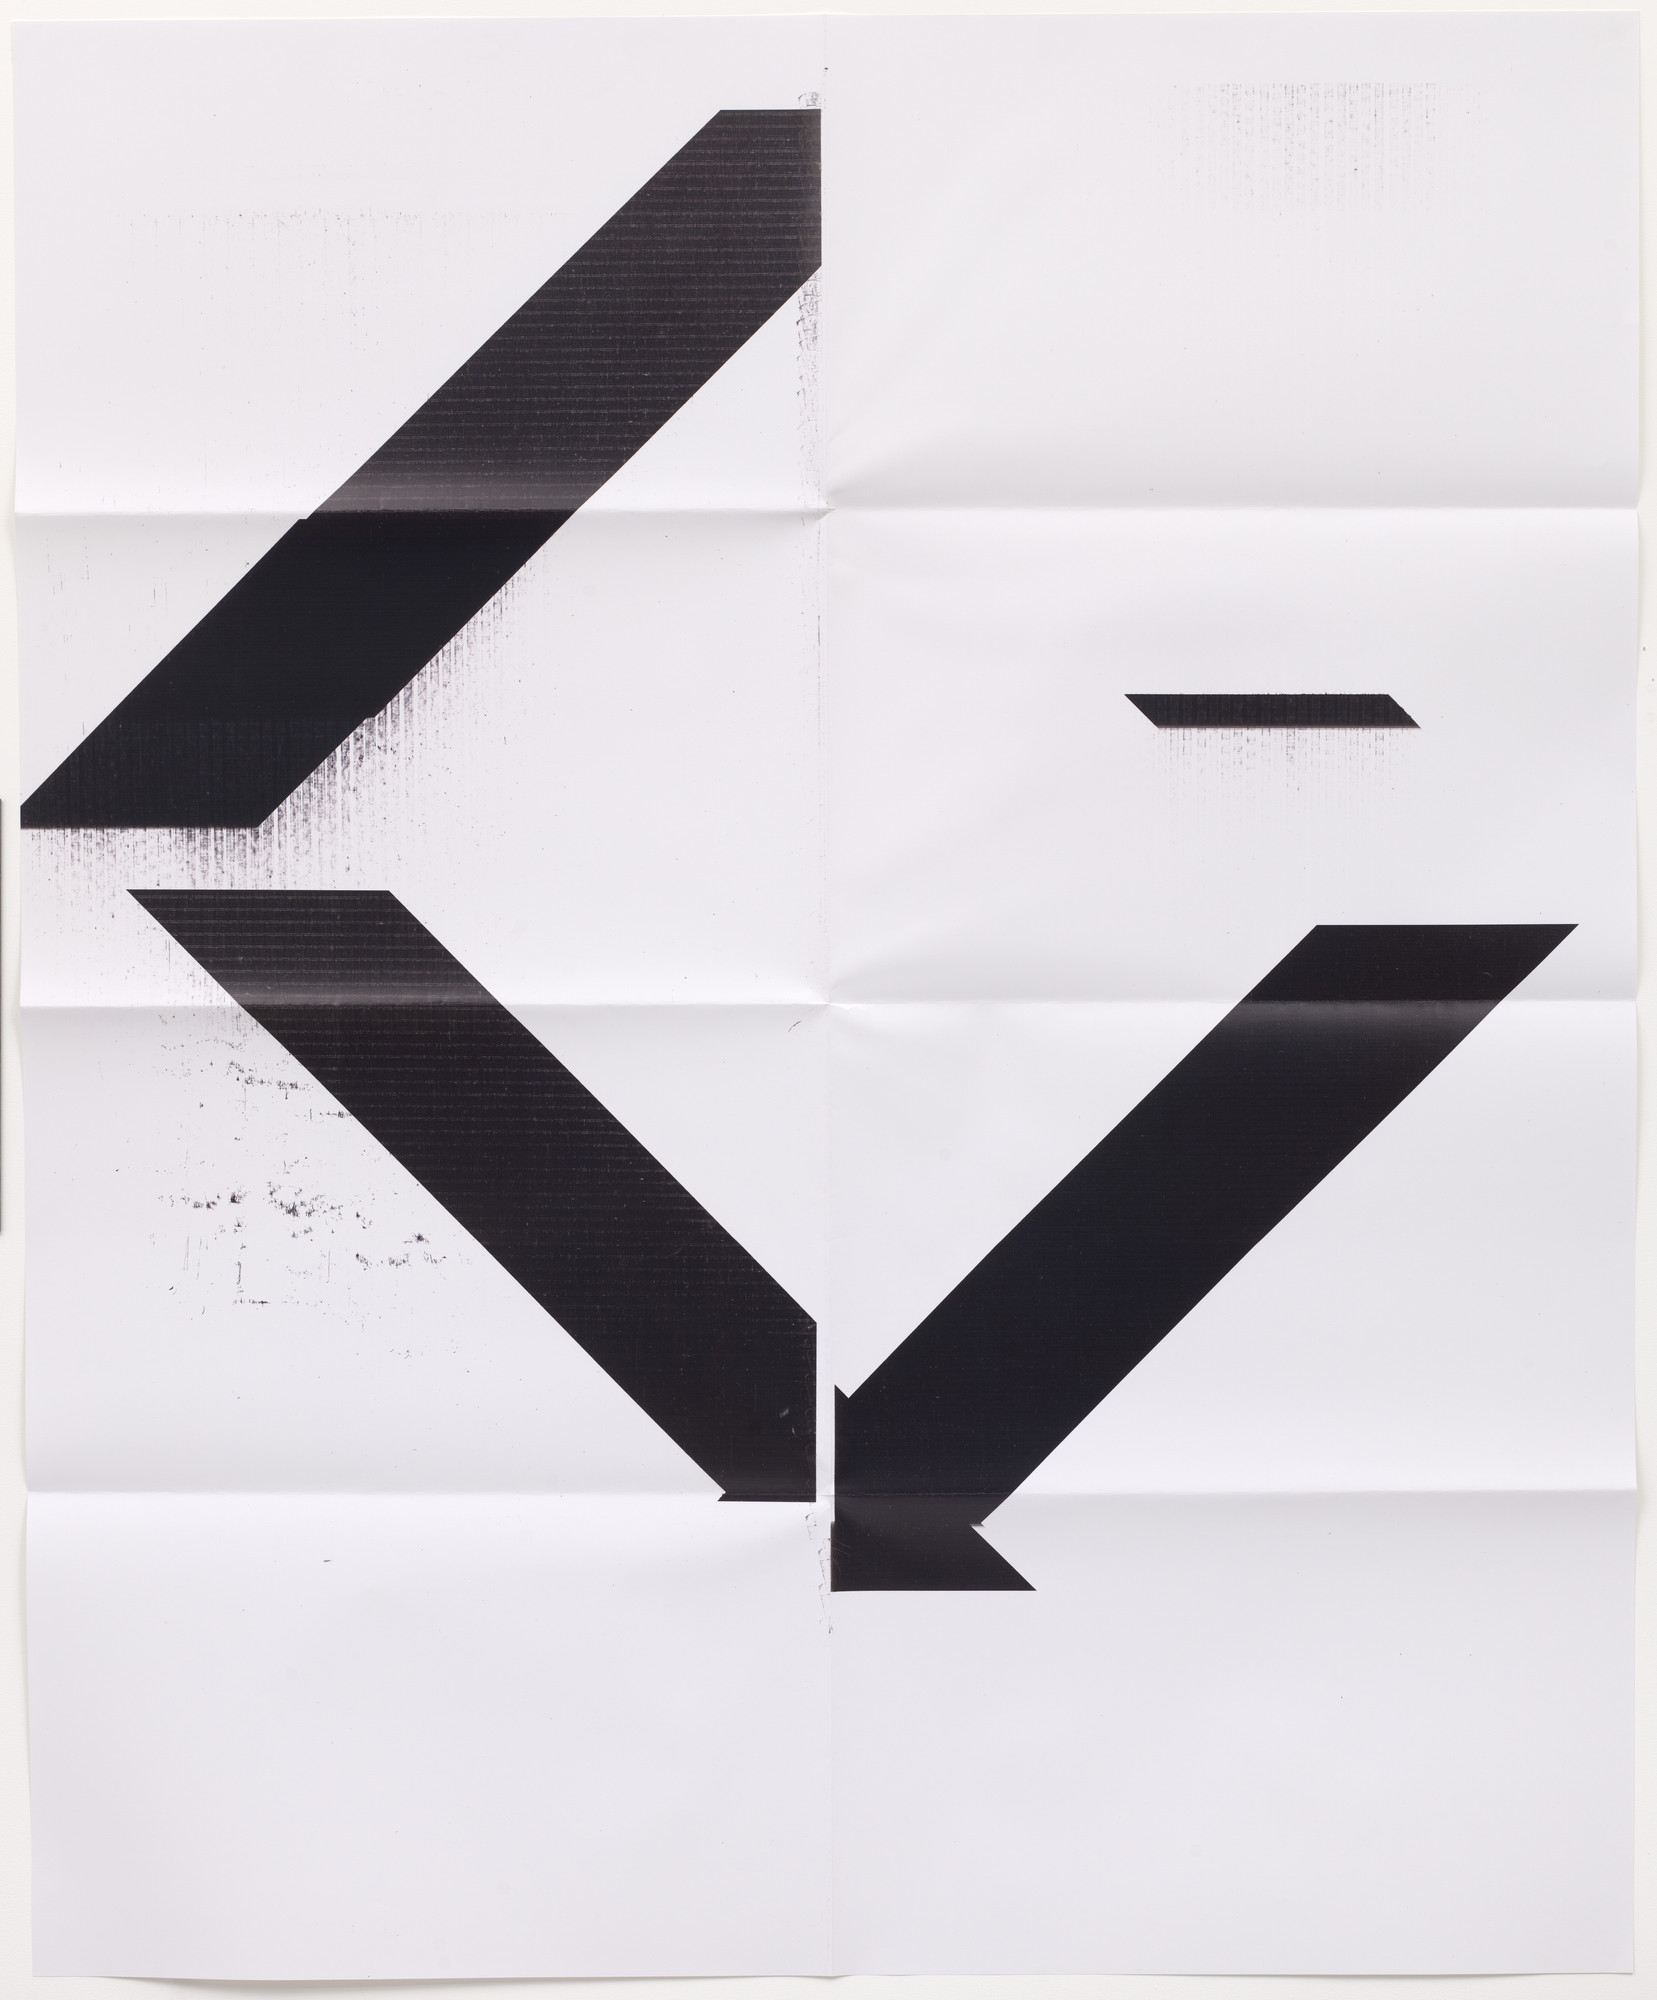 Wade Guyton. X Poster (Untitled, 2007, Epson UltraChrome inkjet on linen, 84 x 69 inches, WG1208). 2017